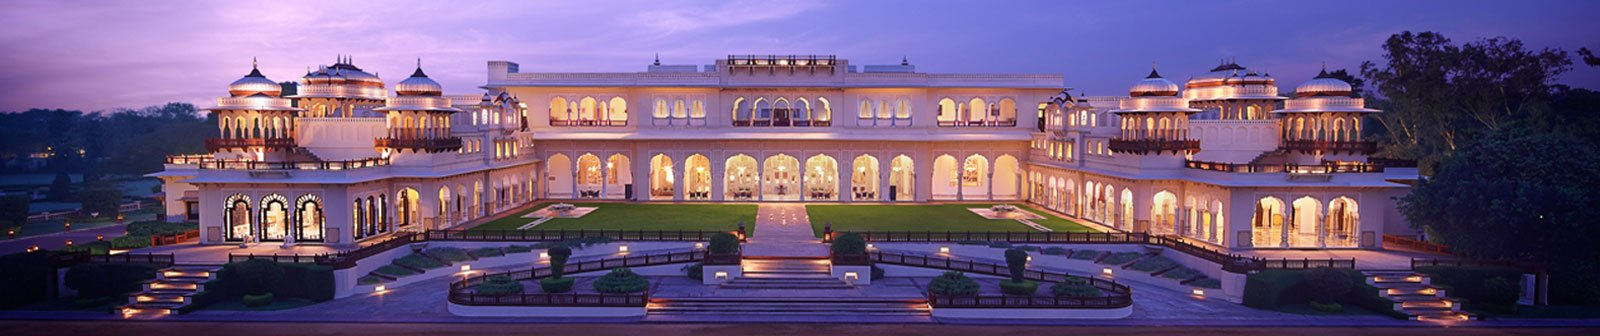 Best Wedding Venues in Gurgaon